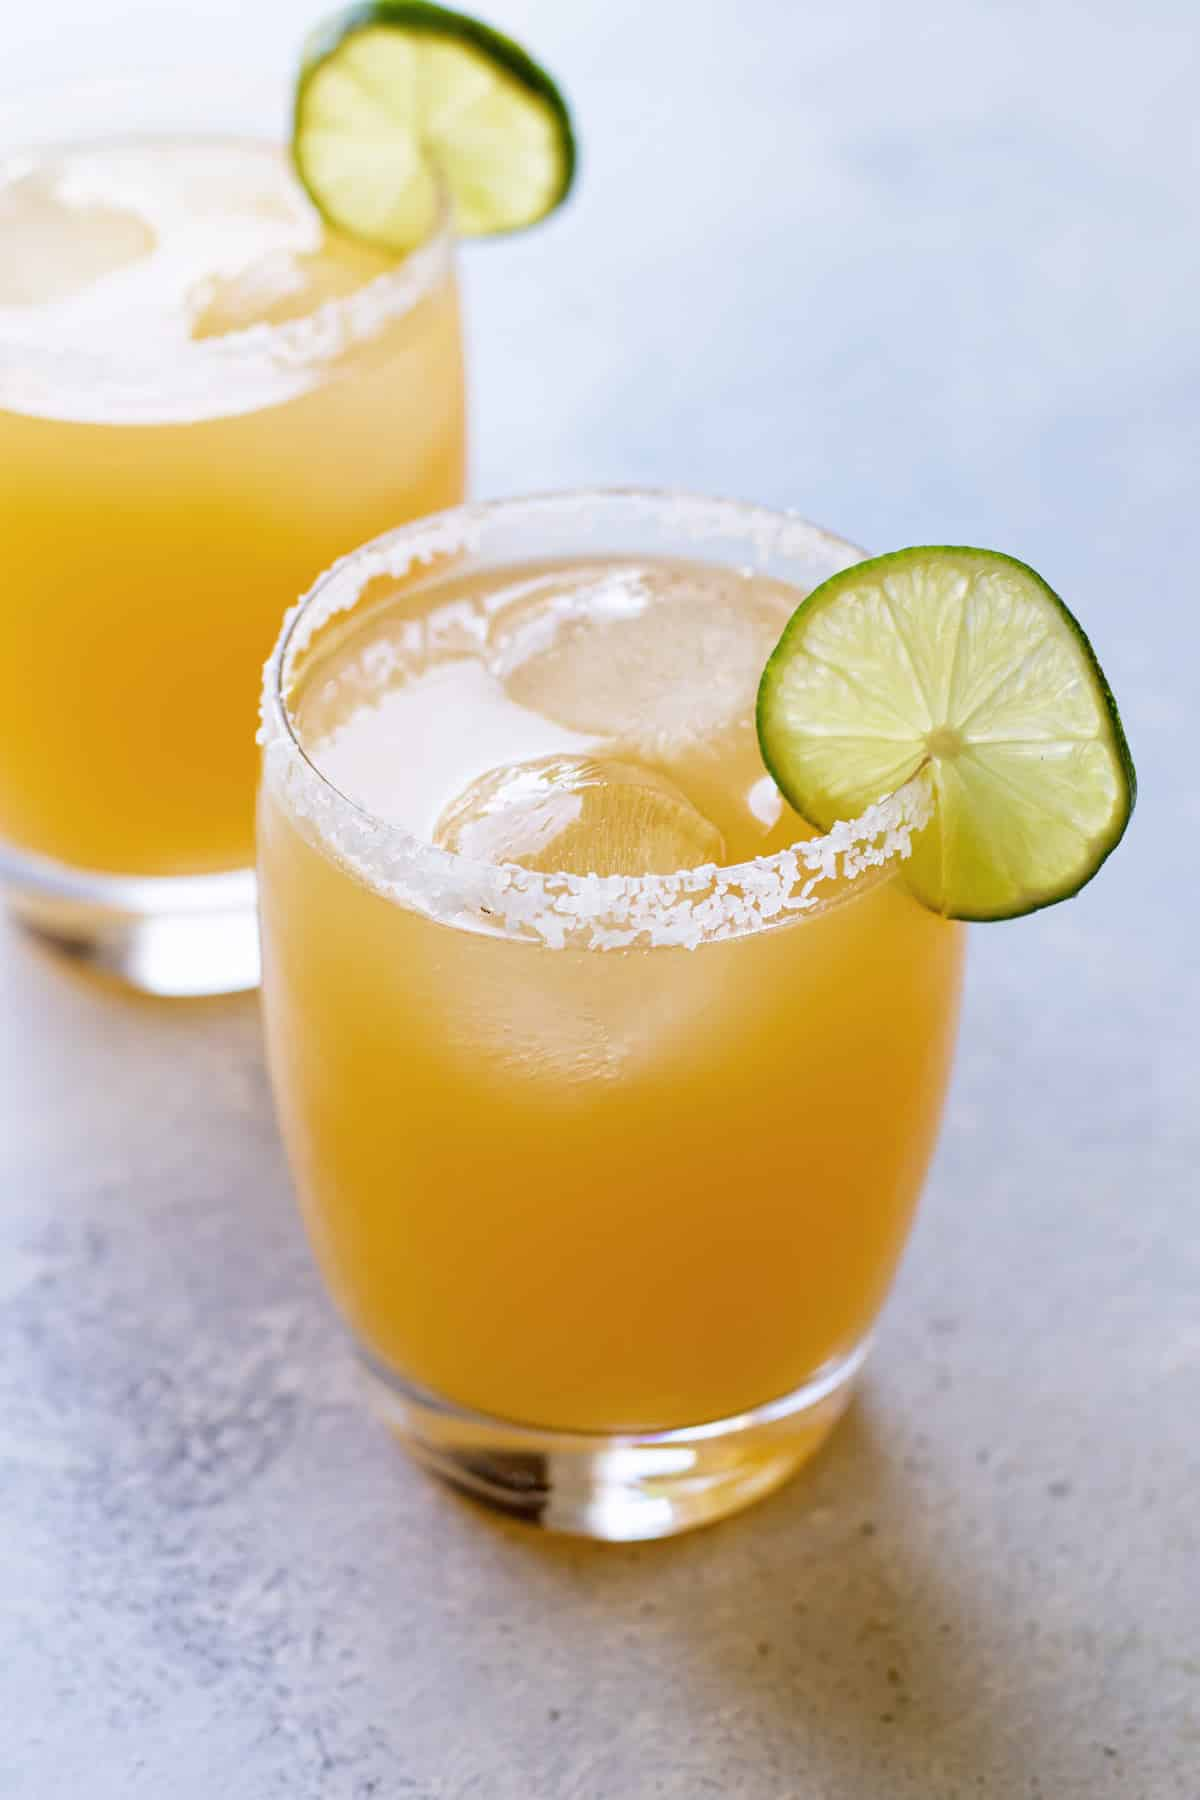 close-up photo of a margarita with a lime garnish